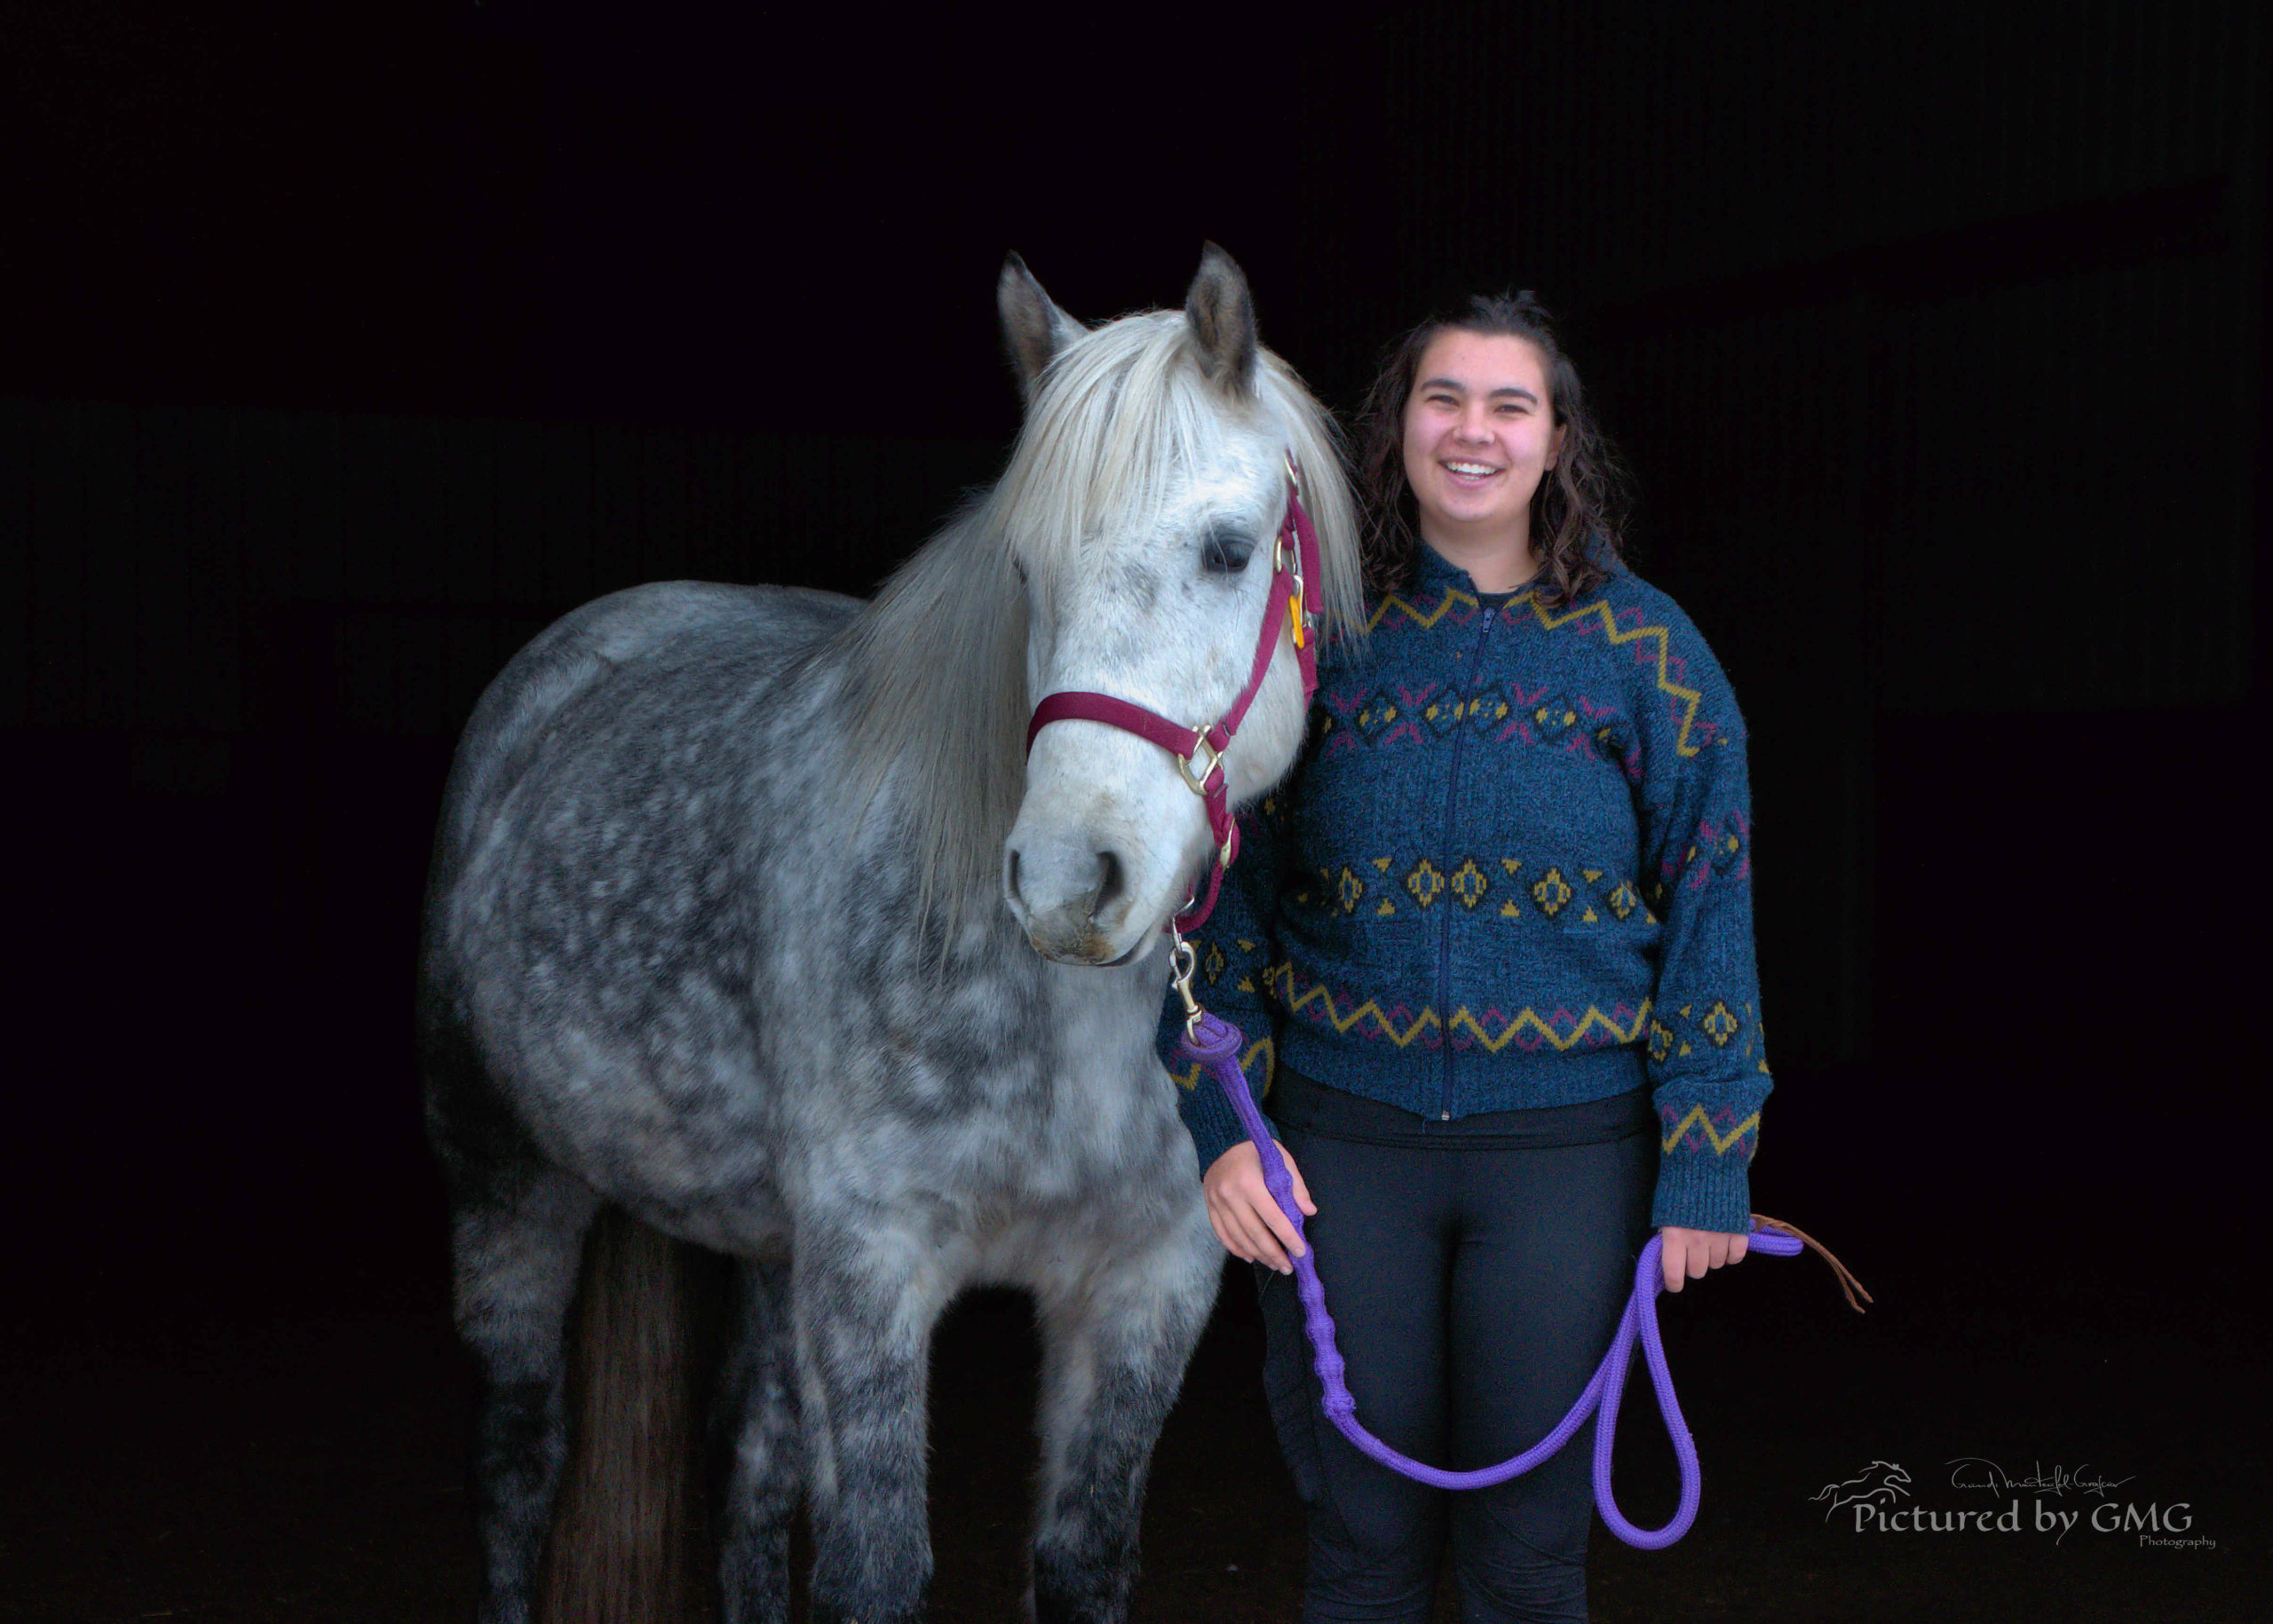 Instructor and horse